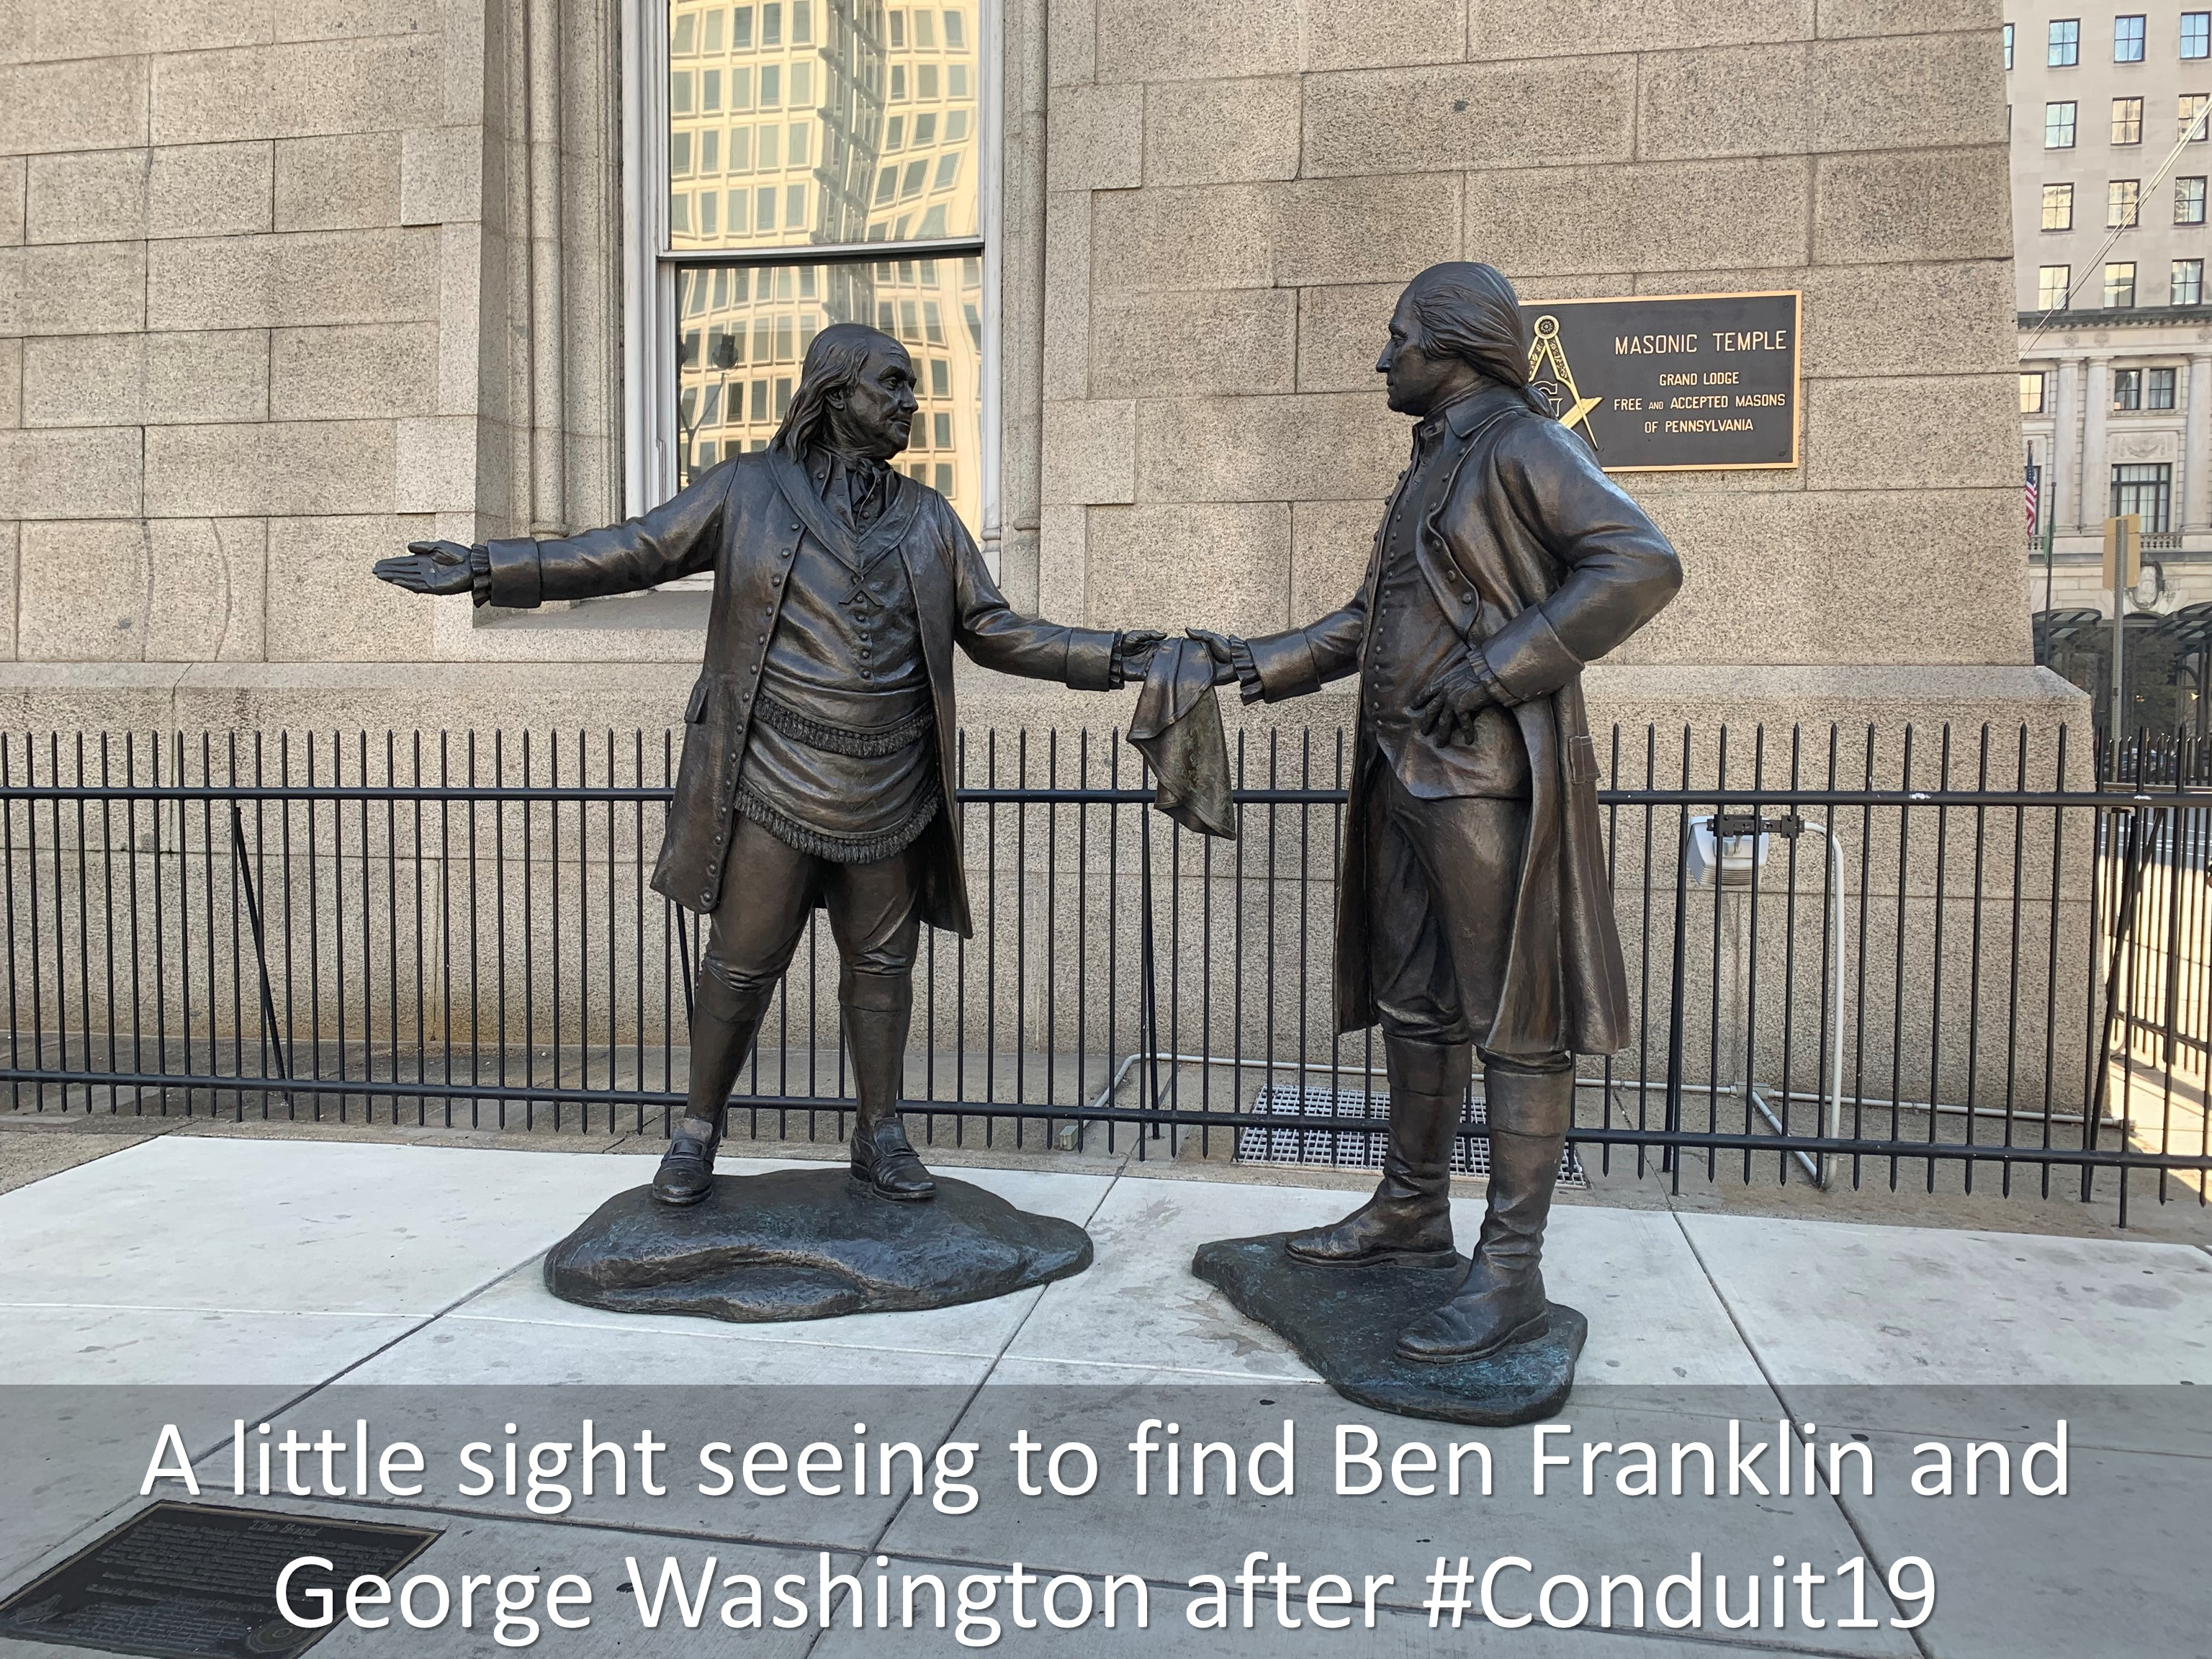 23 A little sight seeing to find Ben Franklin and George Washington after Conduit19